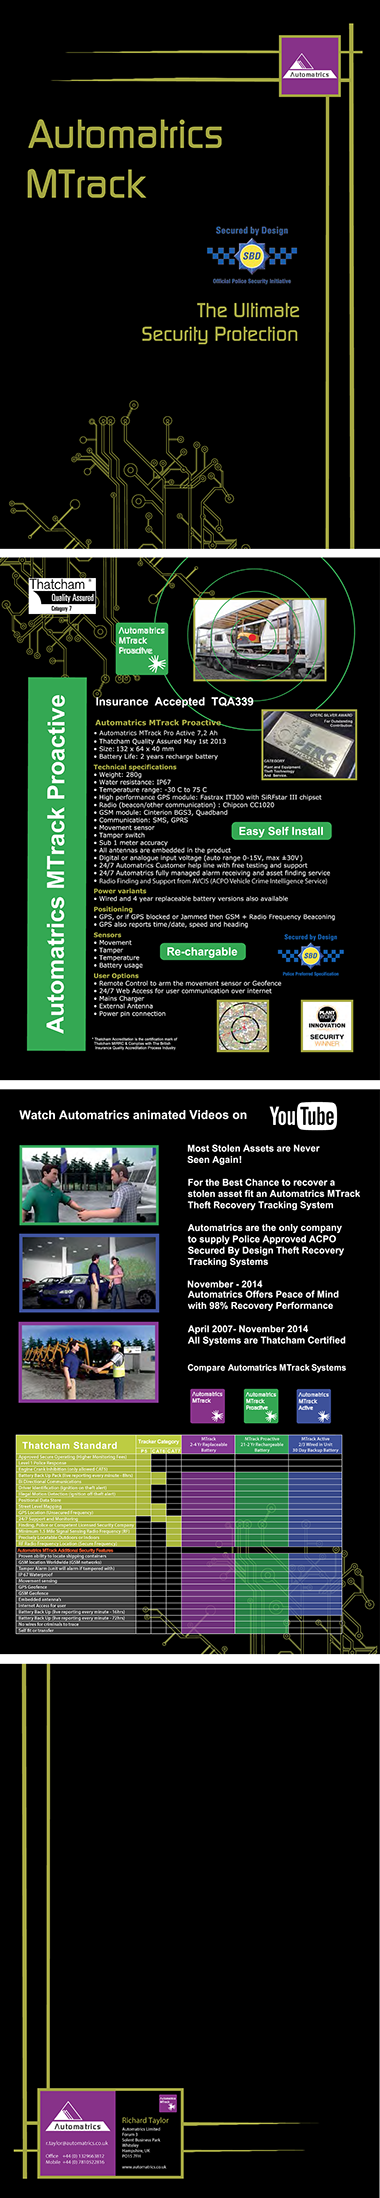 Automatrics MTrack Brochure for the Ultimate Security Protection